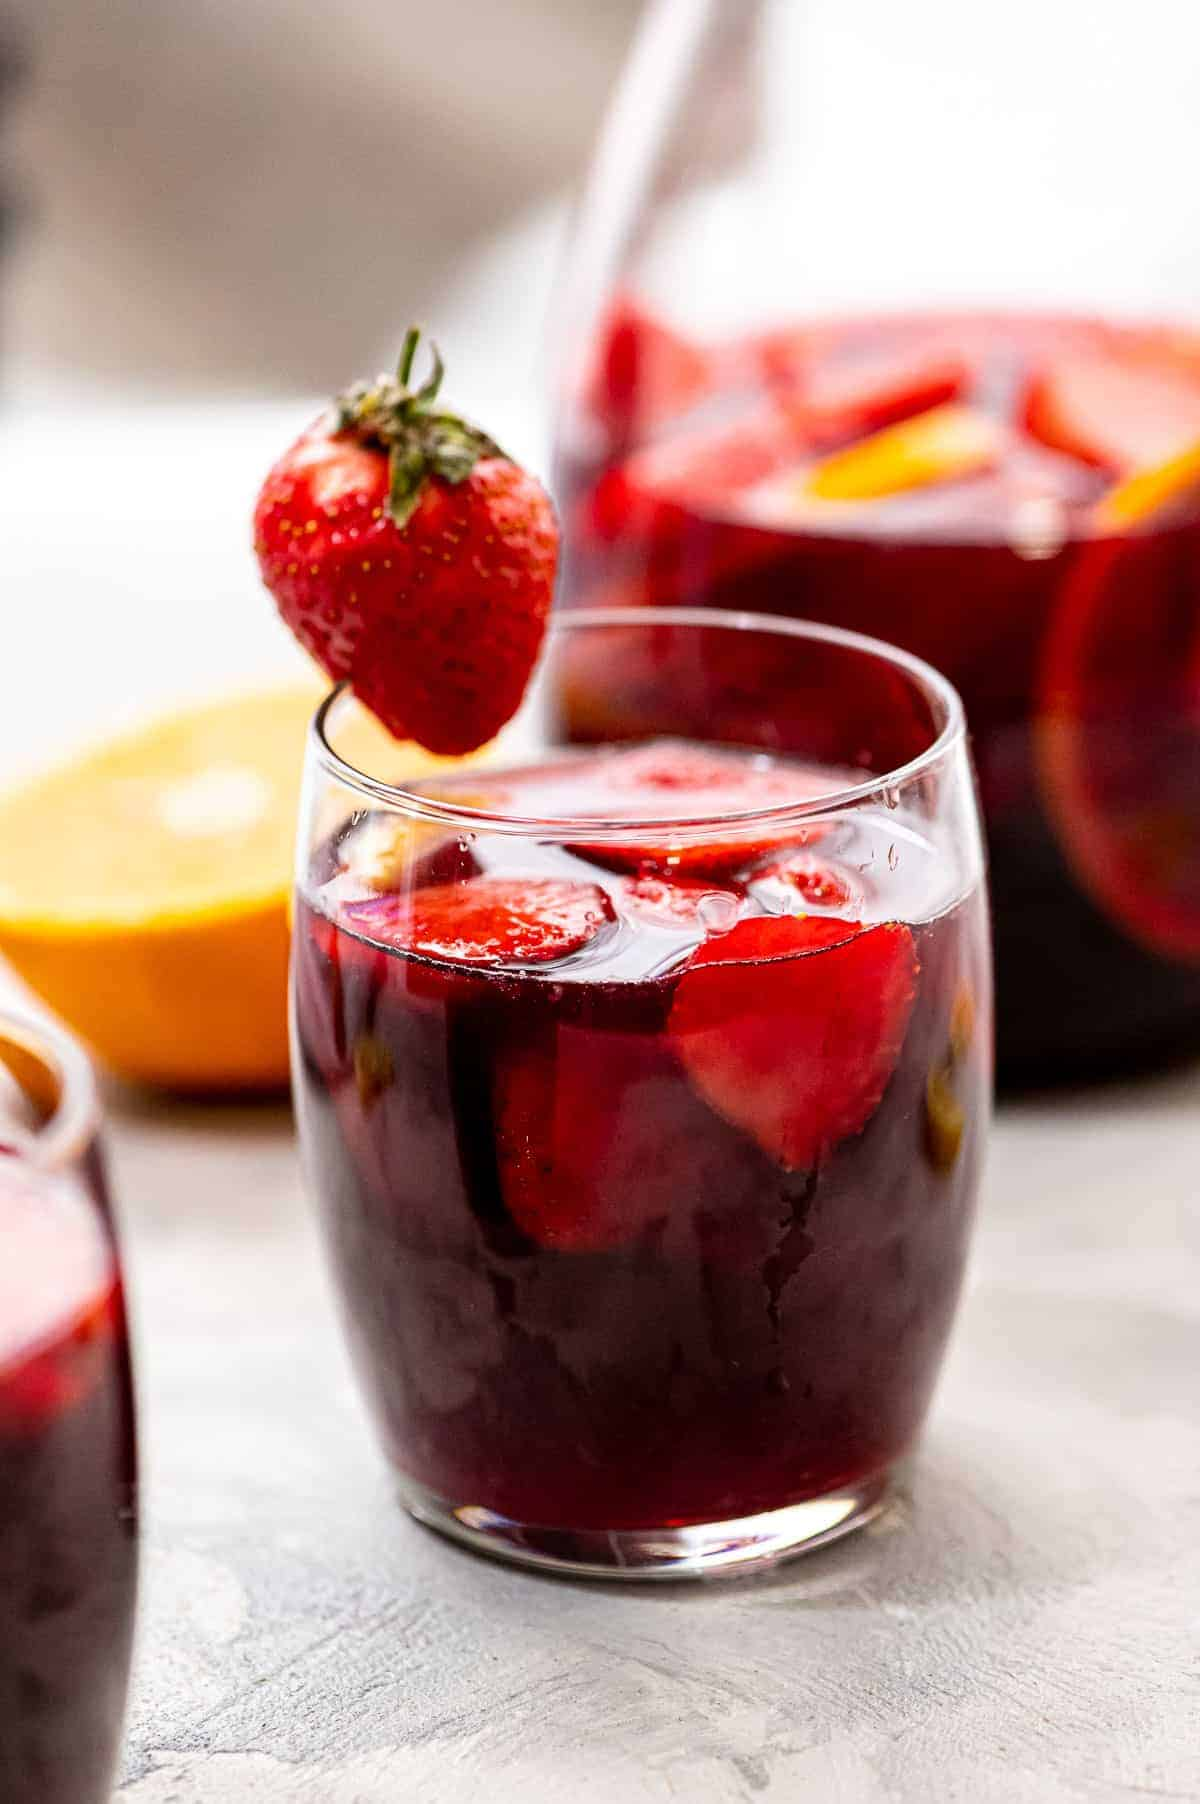 Glass of Red Sangria garnished with a strawberry